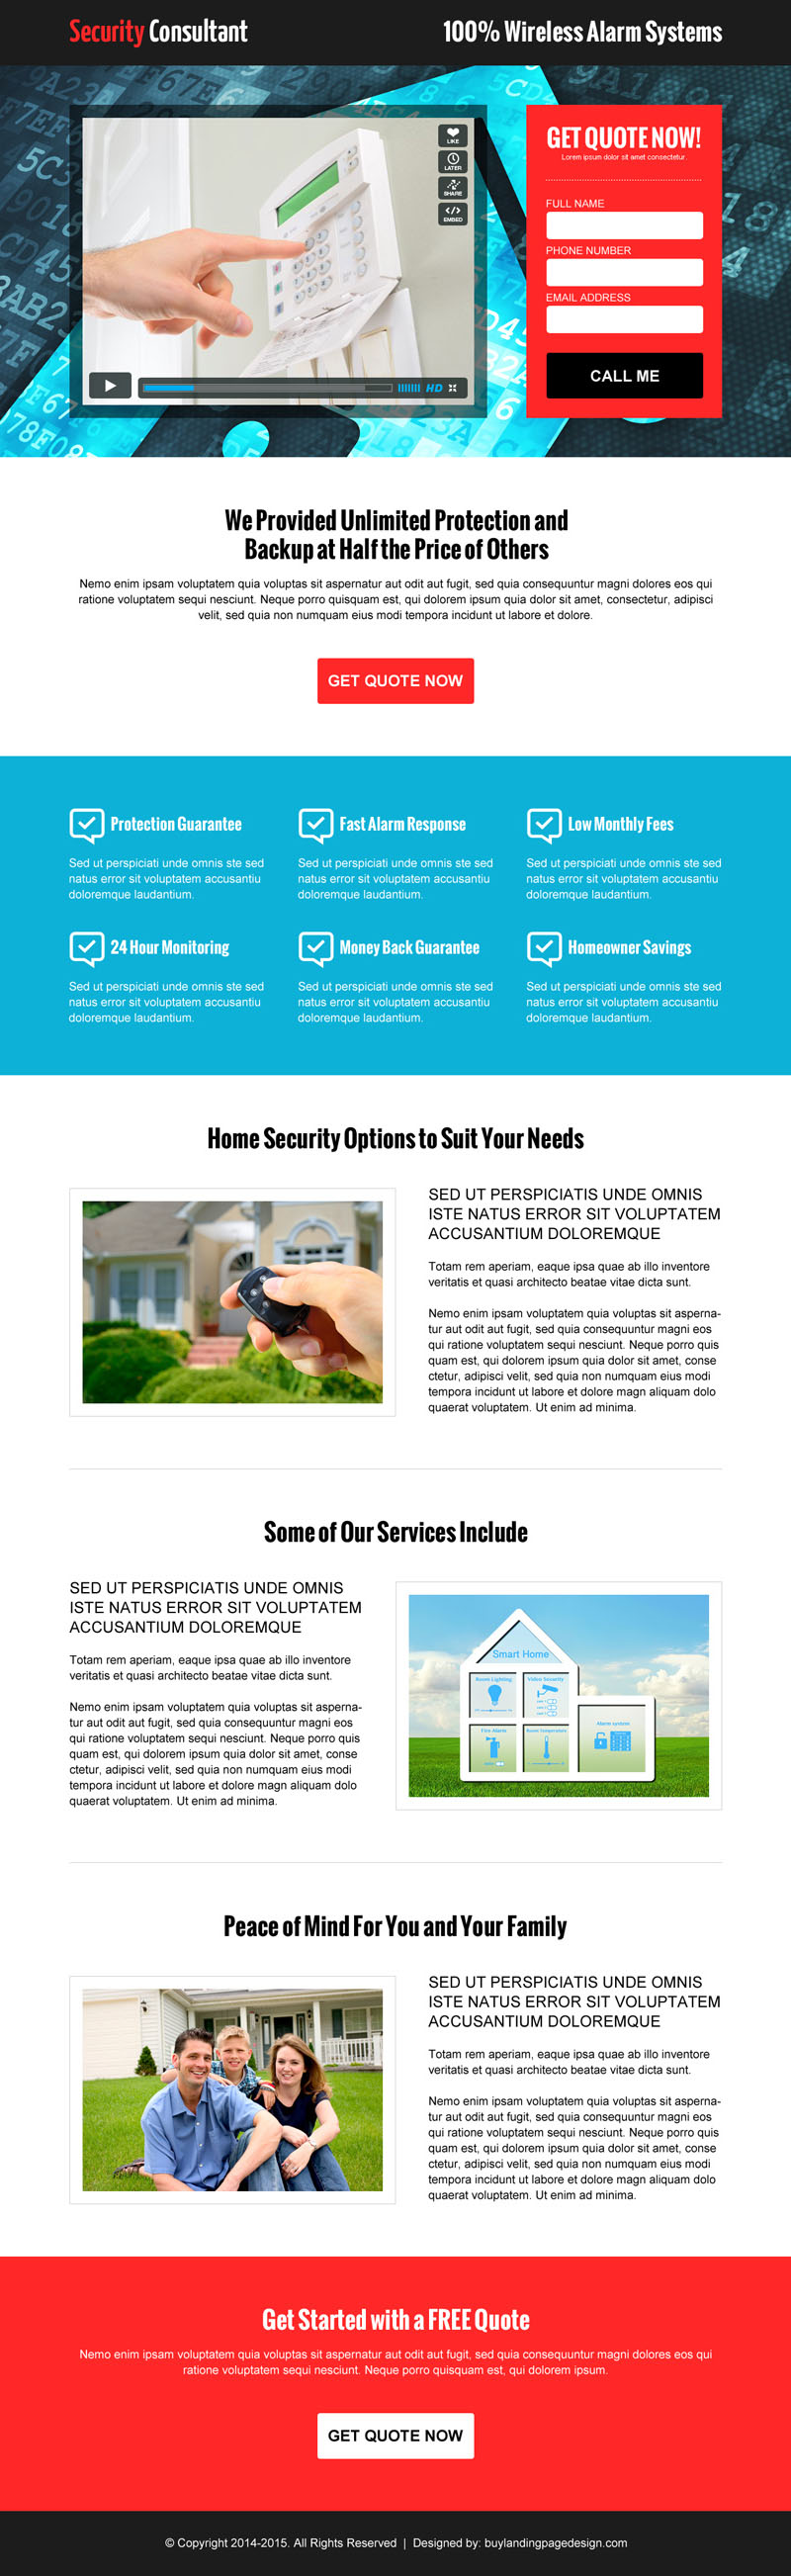 security agency consultation service lead capture video landing page design template https://www.buylandingpagedesign.com/buy/security-agency-consultation-service-lead-capture-video-landing-page-design-template/1446